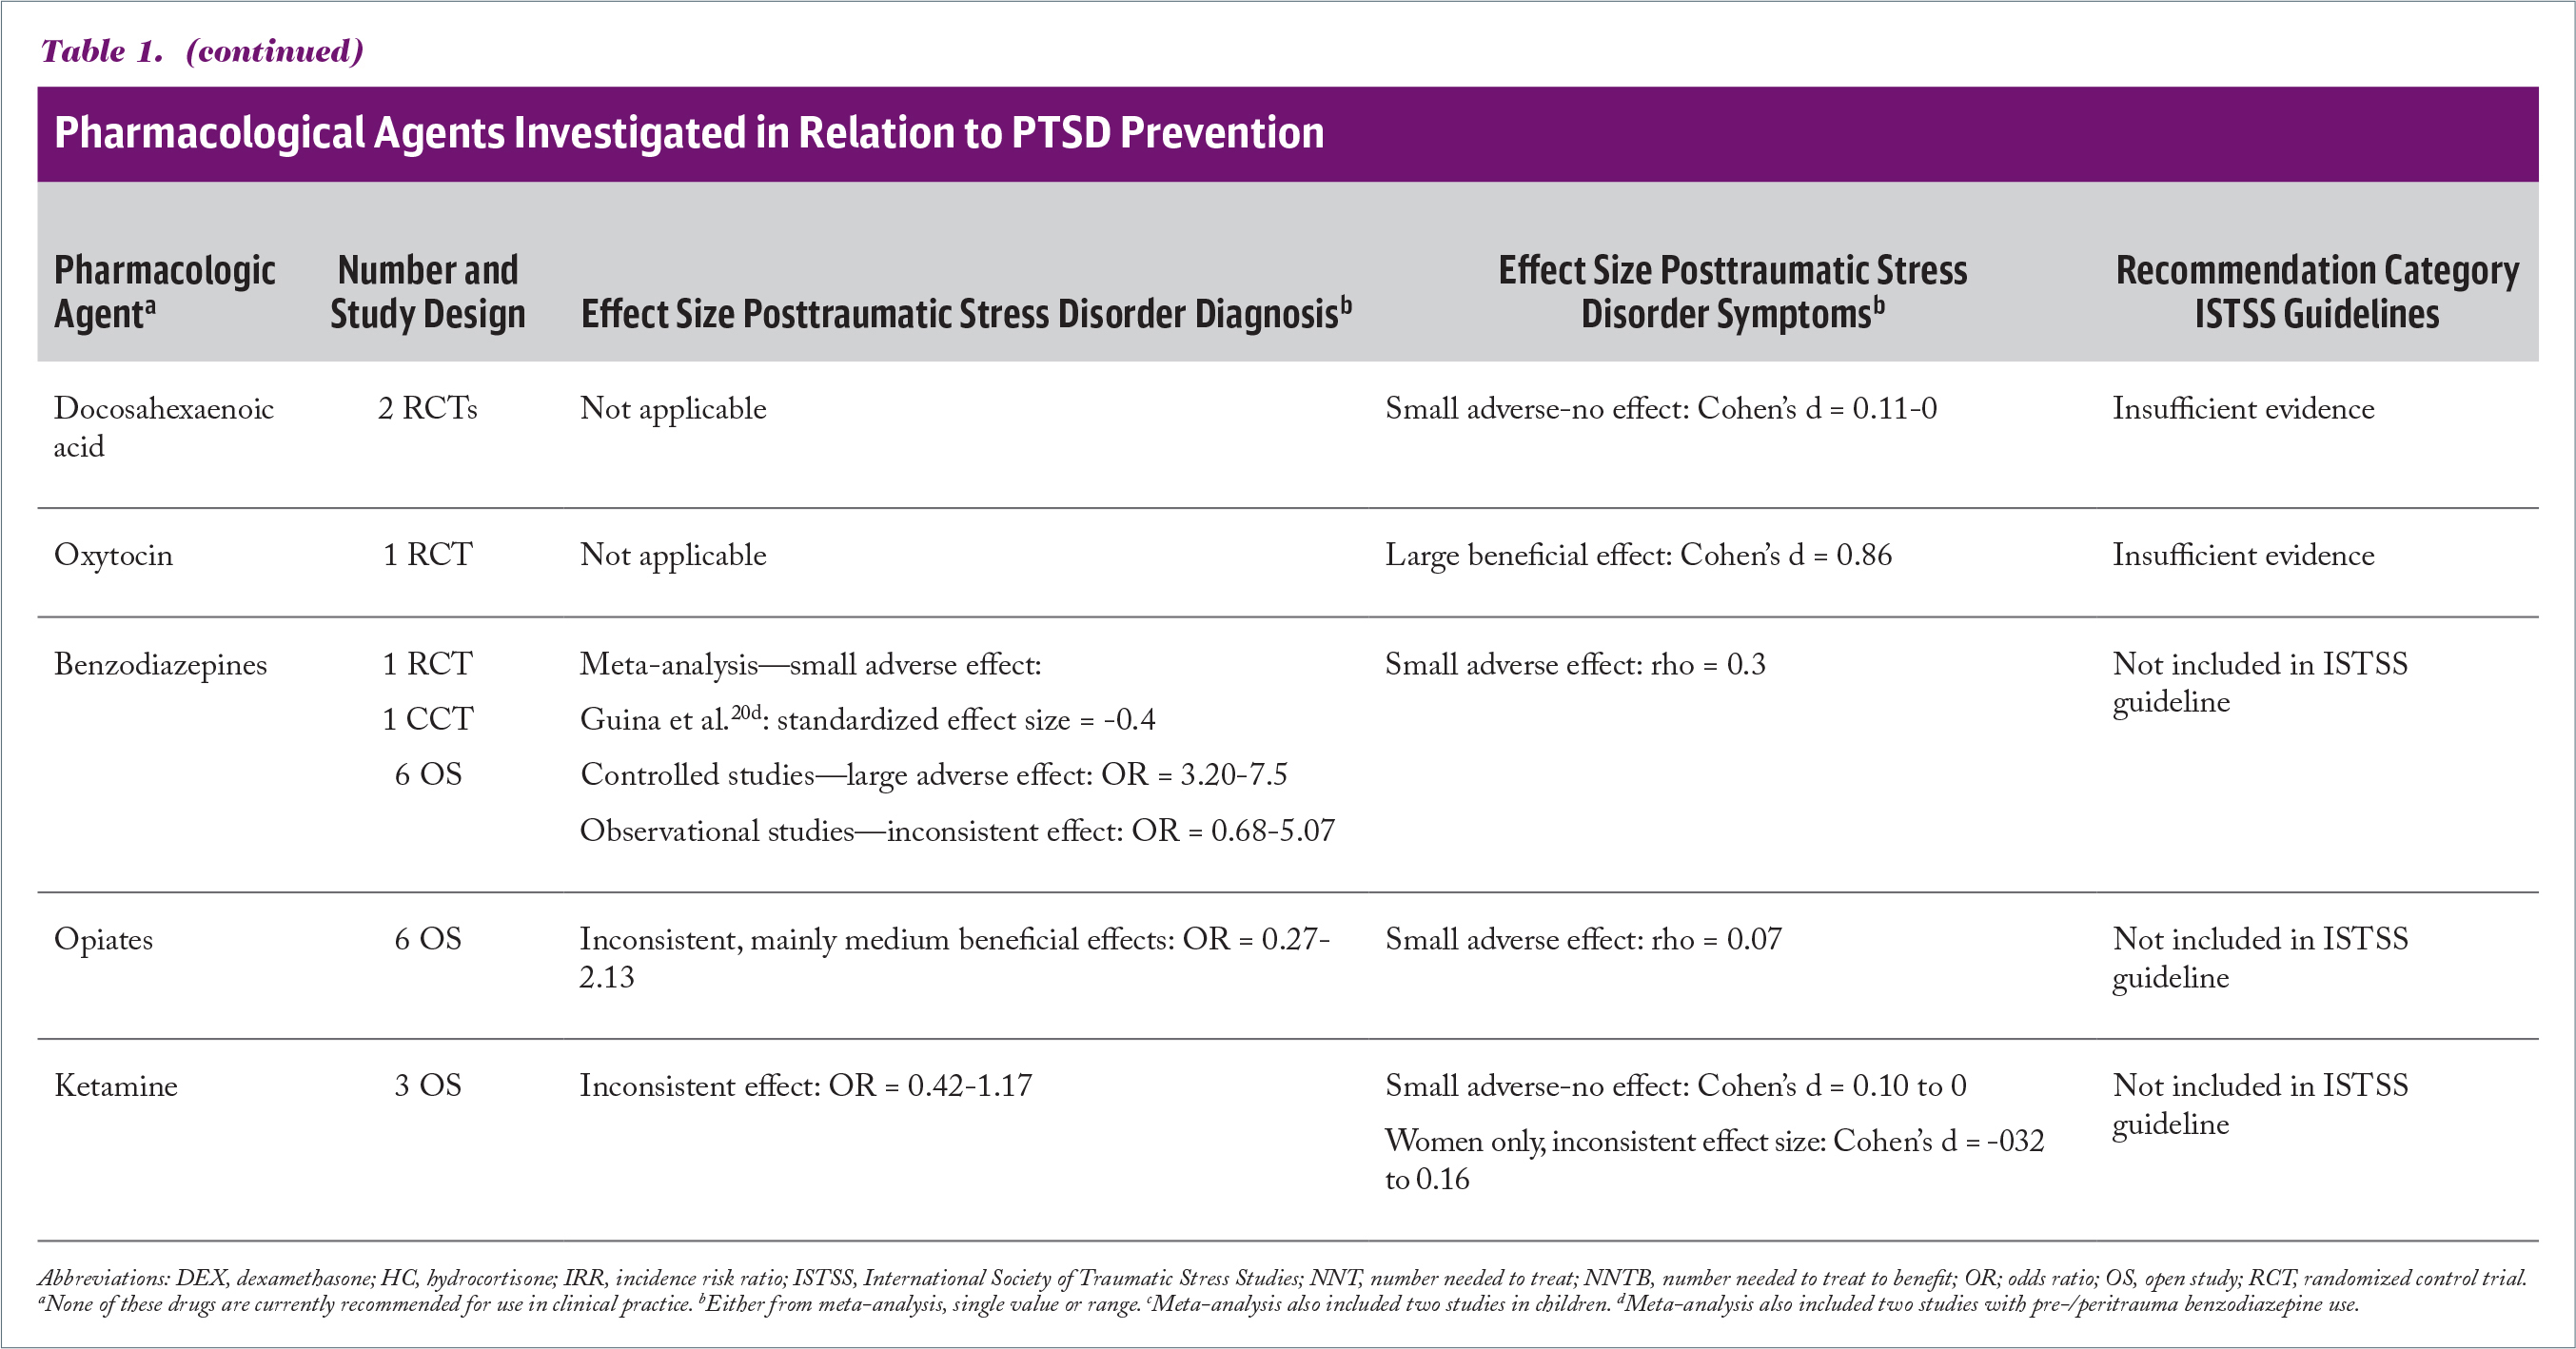 Pharmacological Agents Investigated in Relation to PTSD Prevention